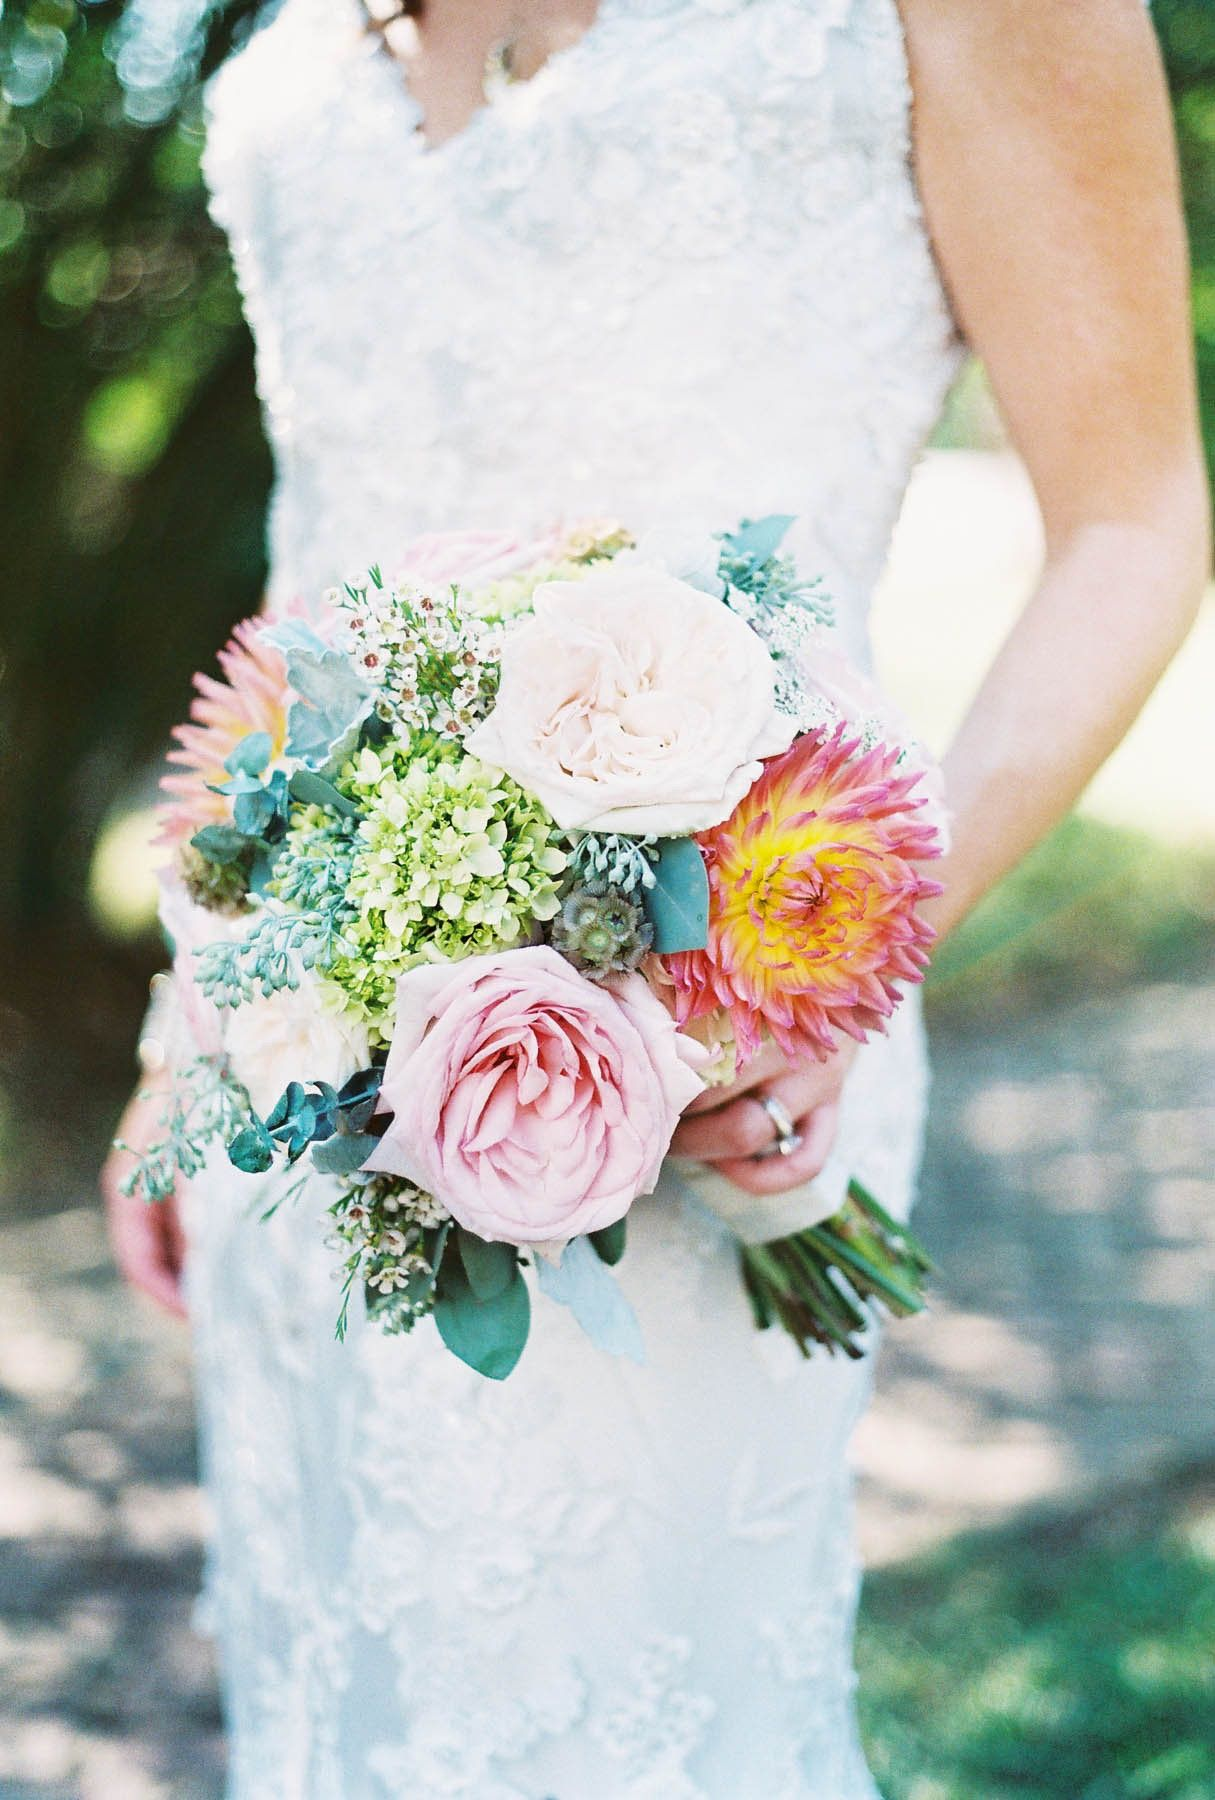 Bridal Bouquet with Pink Garden Roses, Dahlias, Hydrangea, Eucalyptus and more!